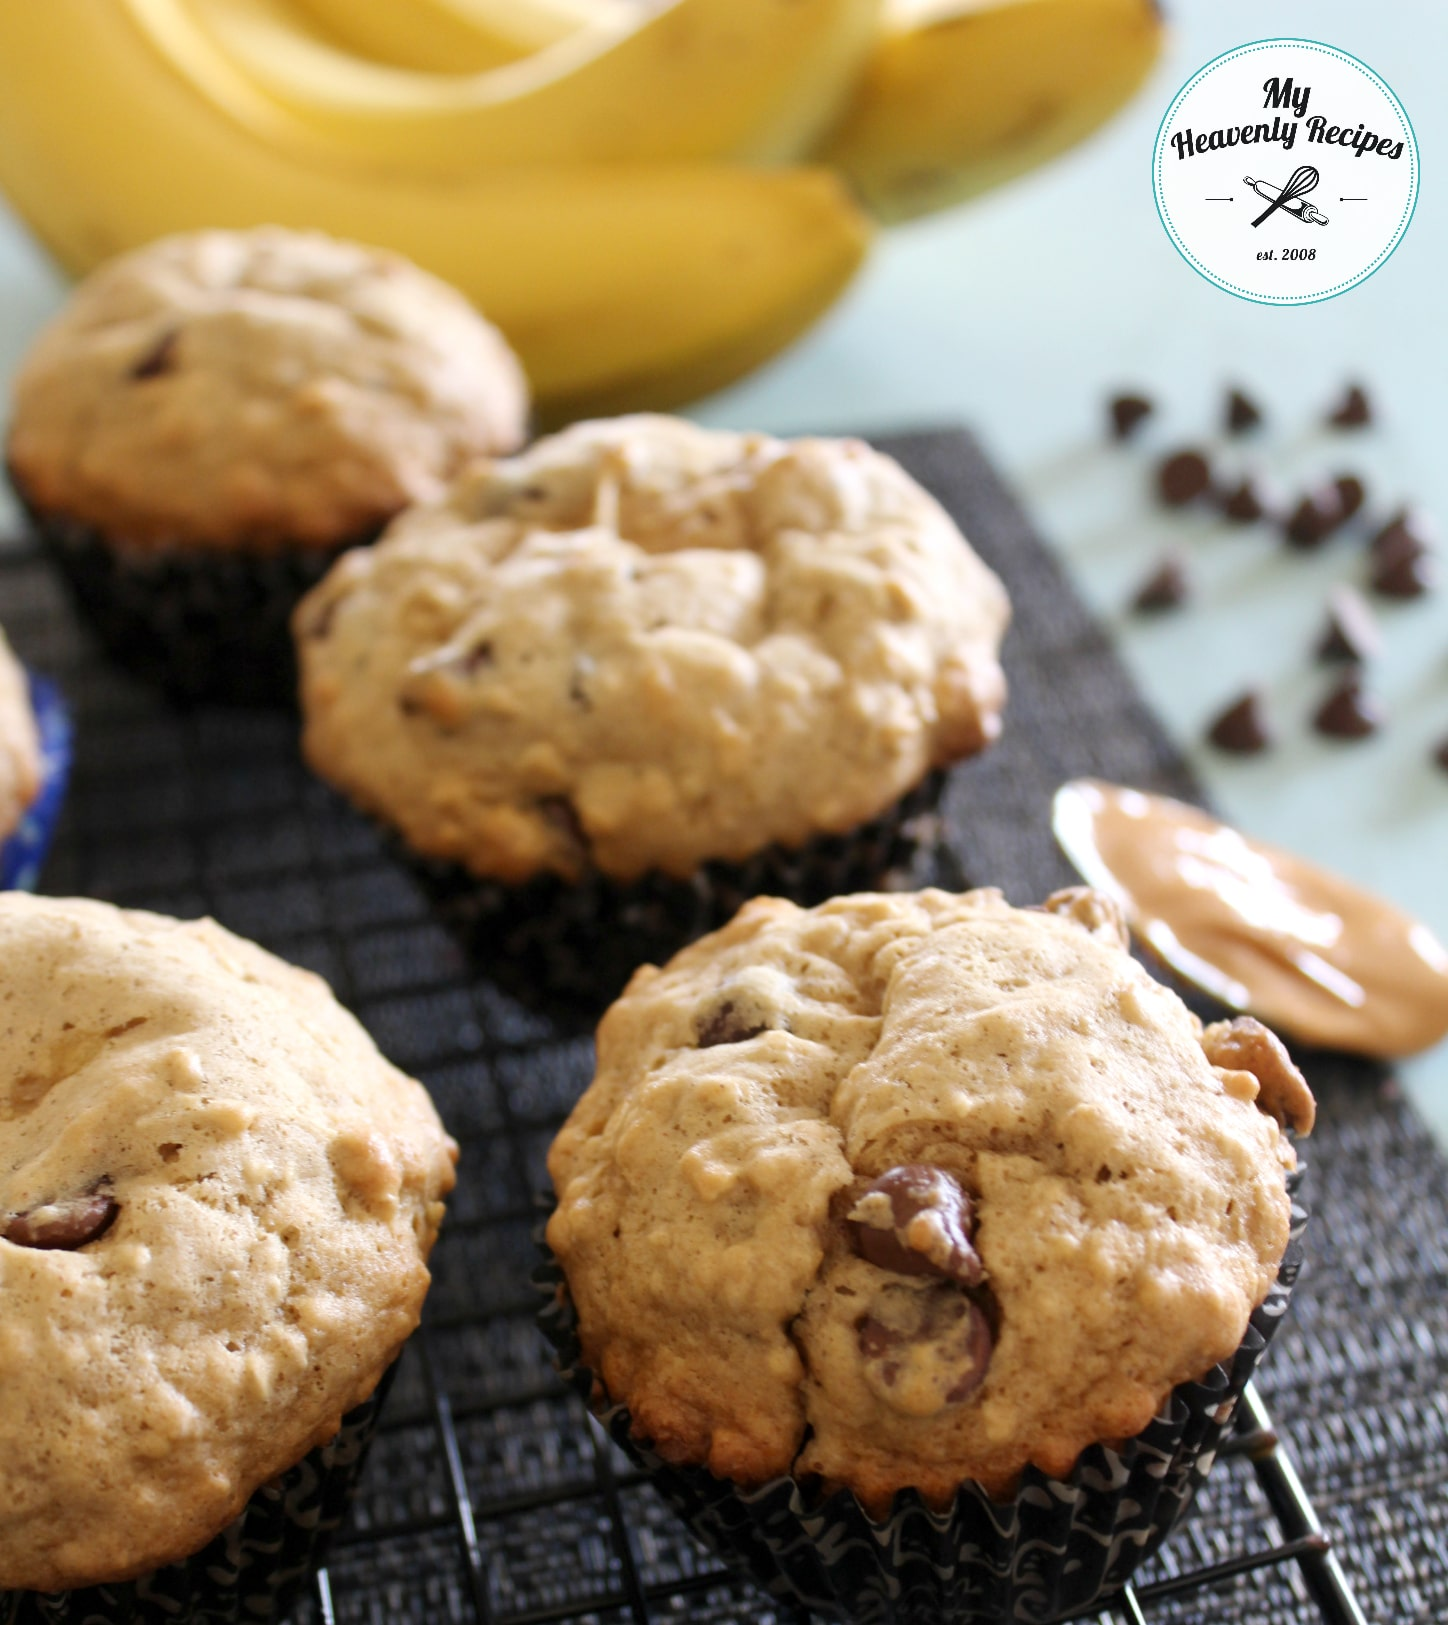 Chocolate Chip Banana Oatmeal Muffin with Peanut Butter